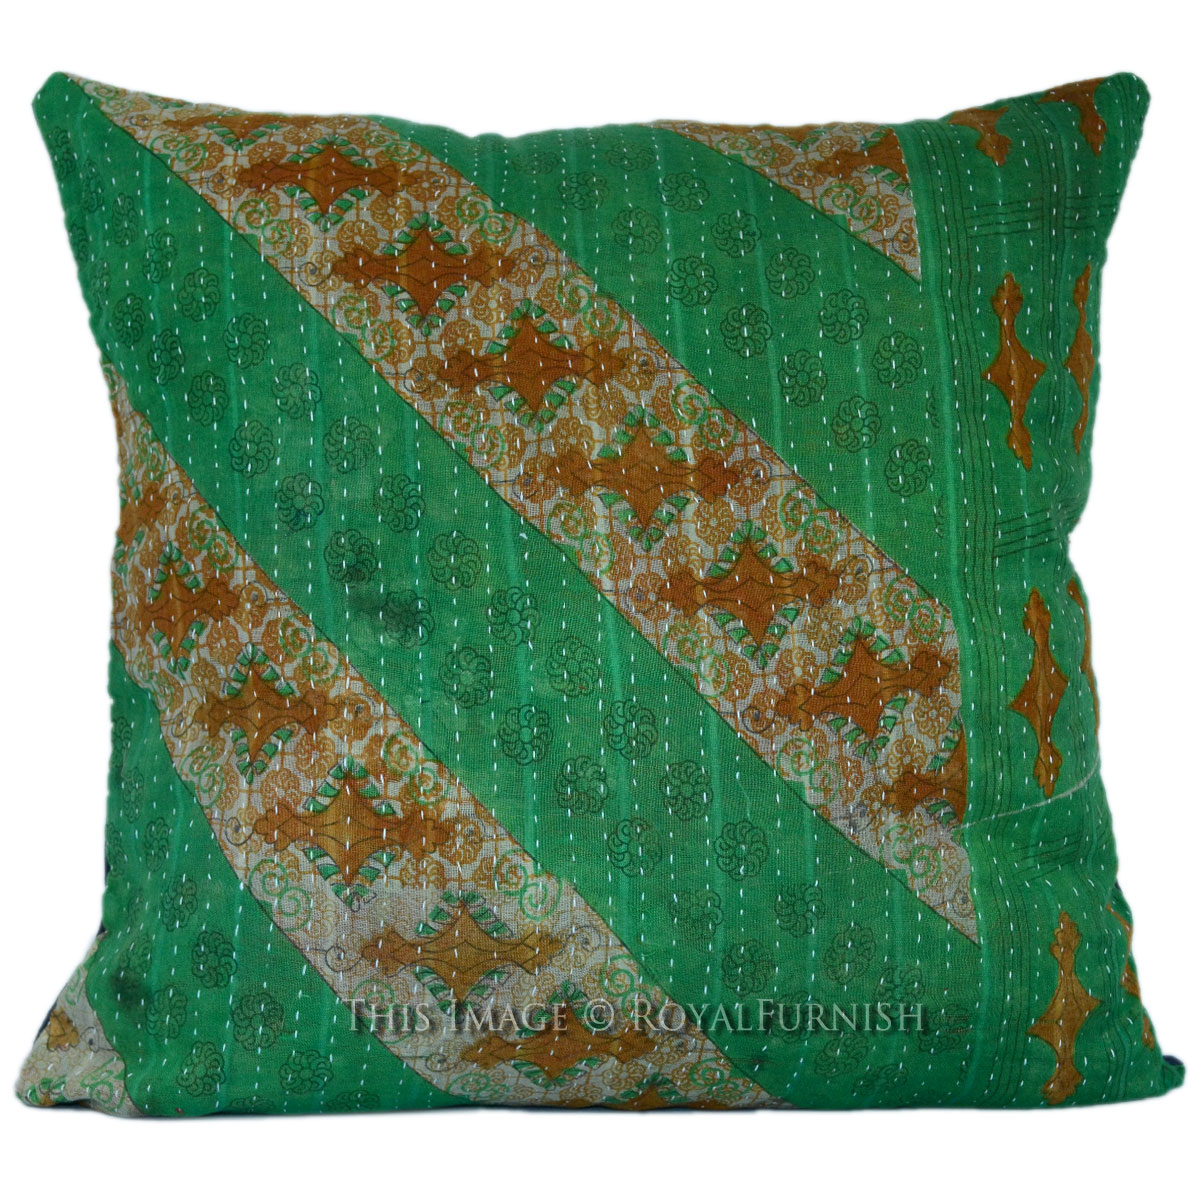 Handmade Decorative Throw Pillows : 16